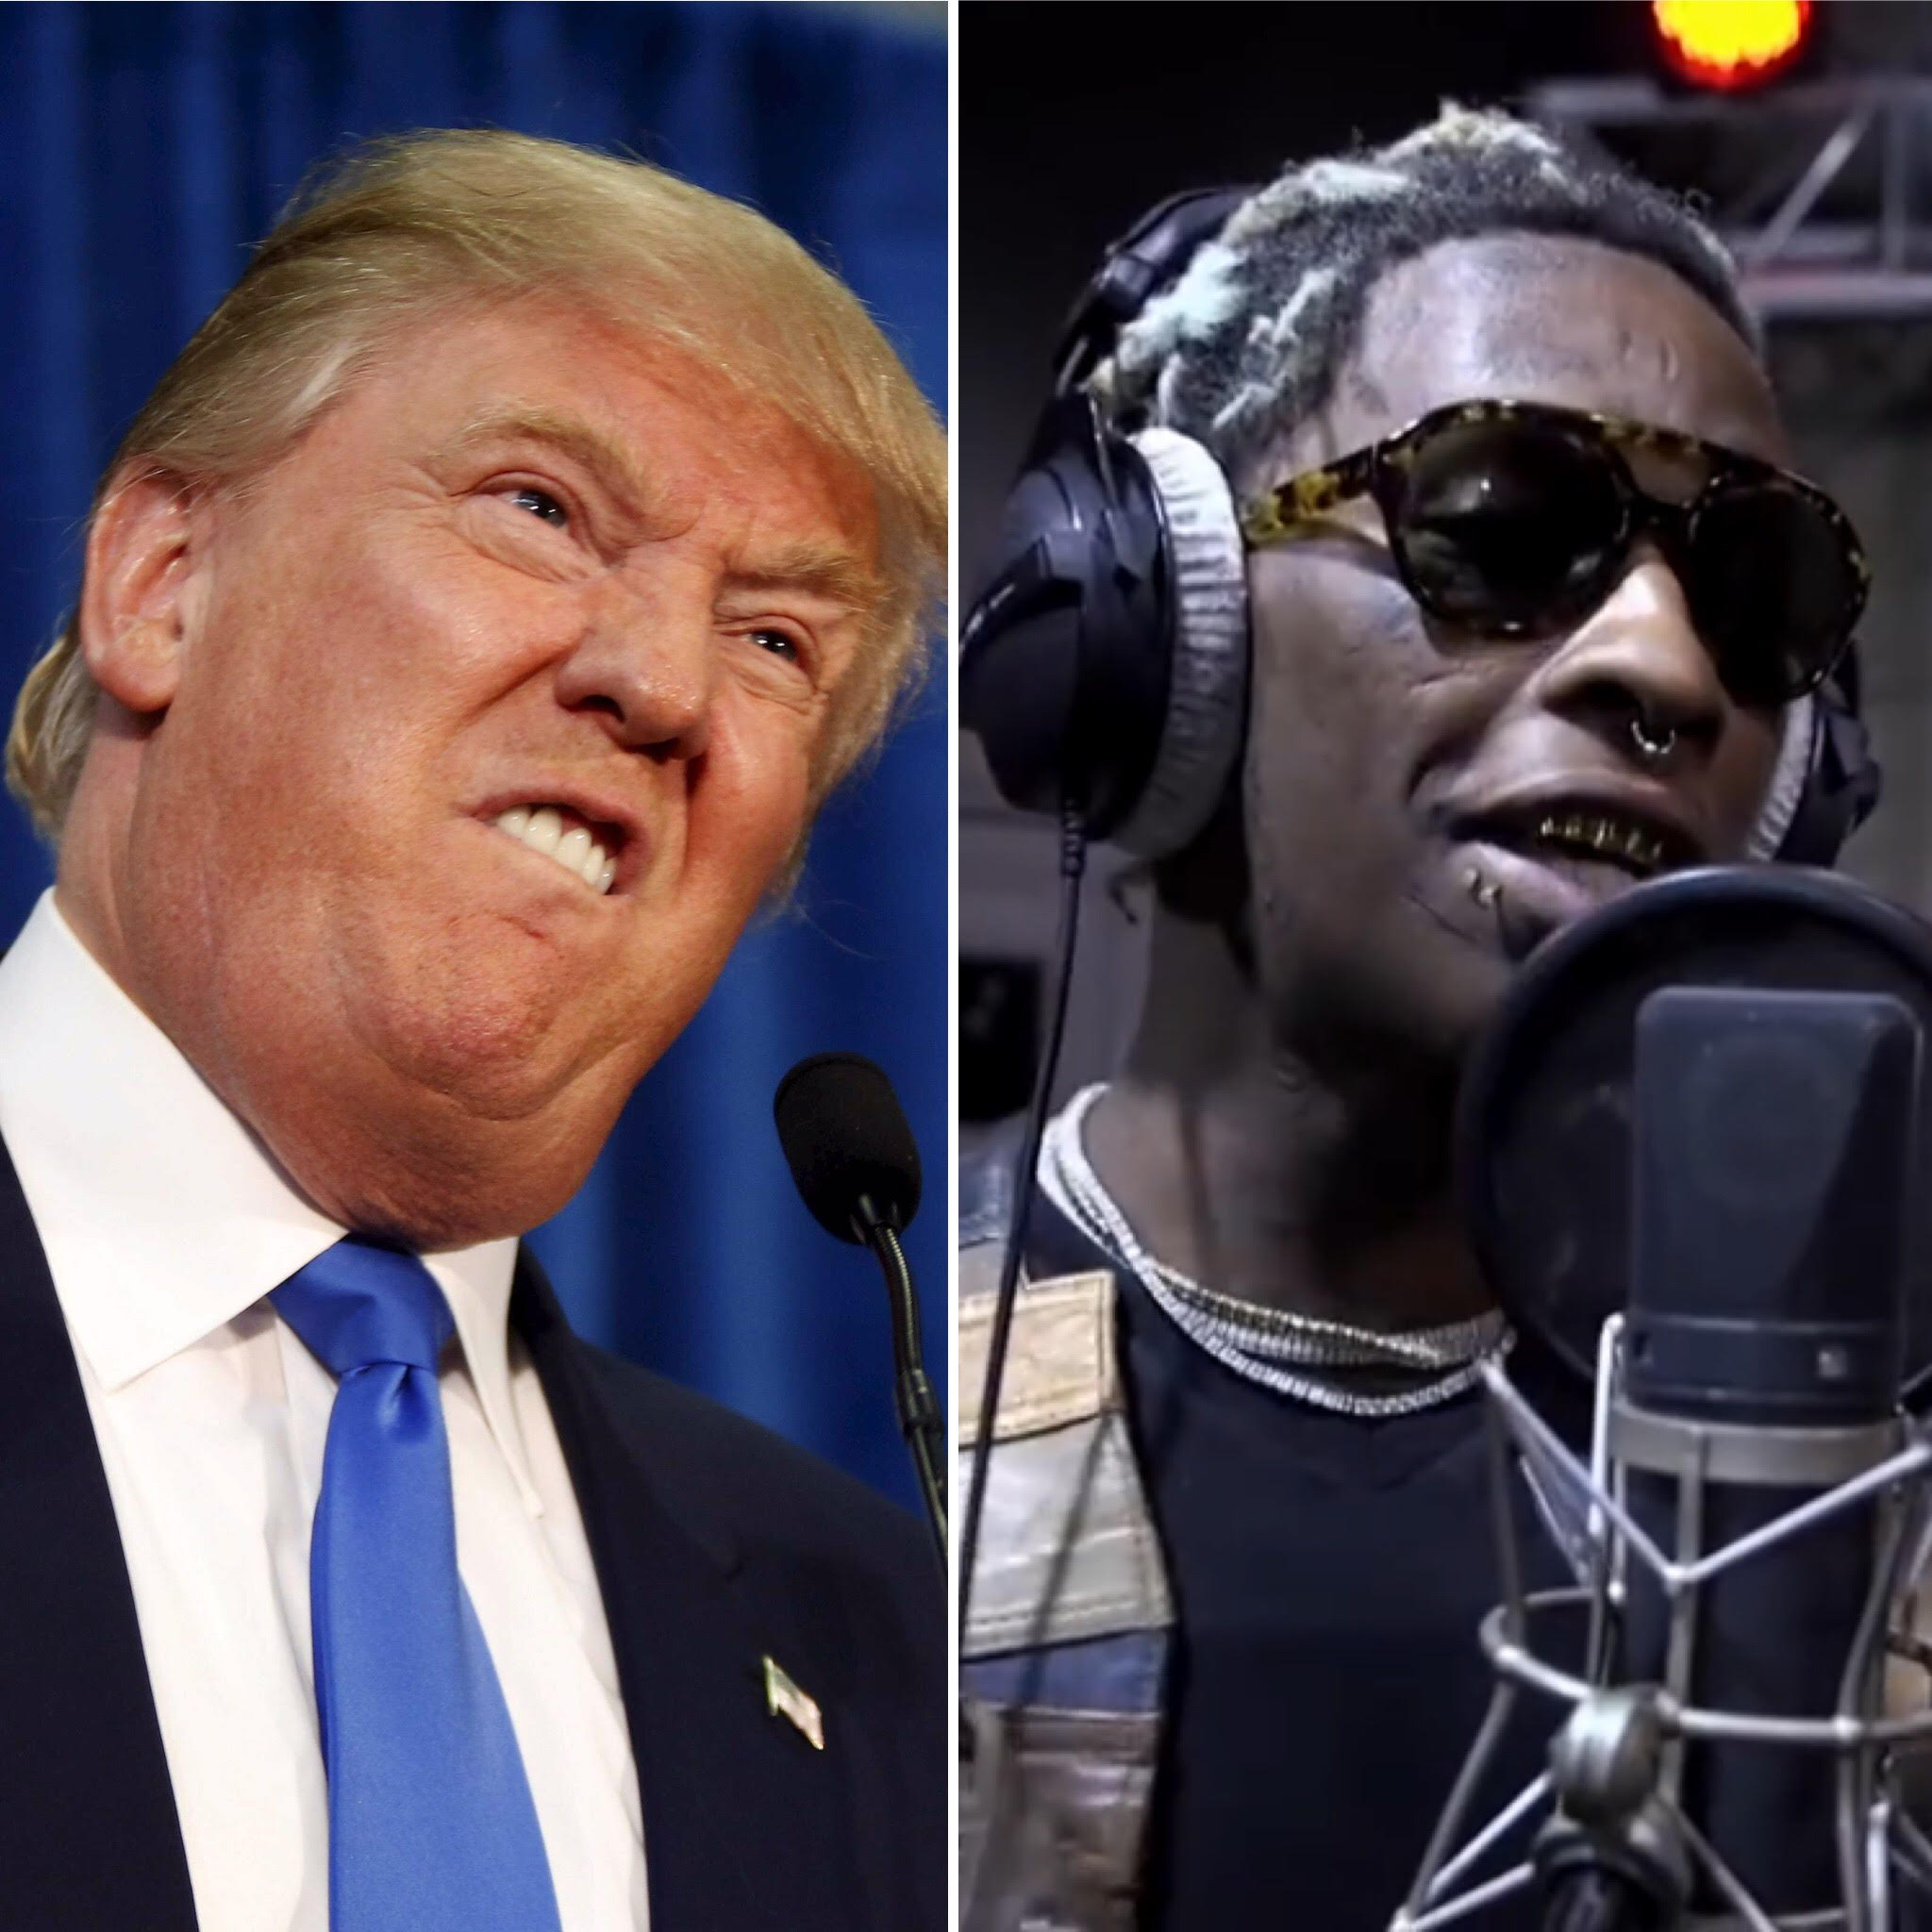 donald trump and young thug in common